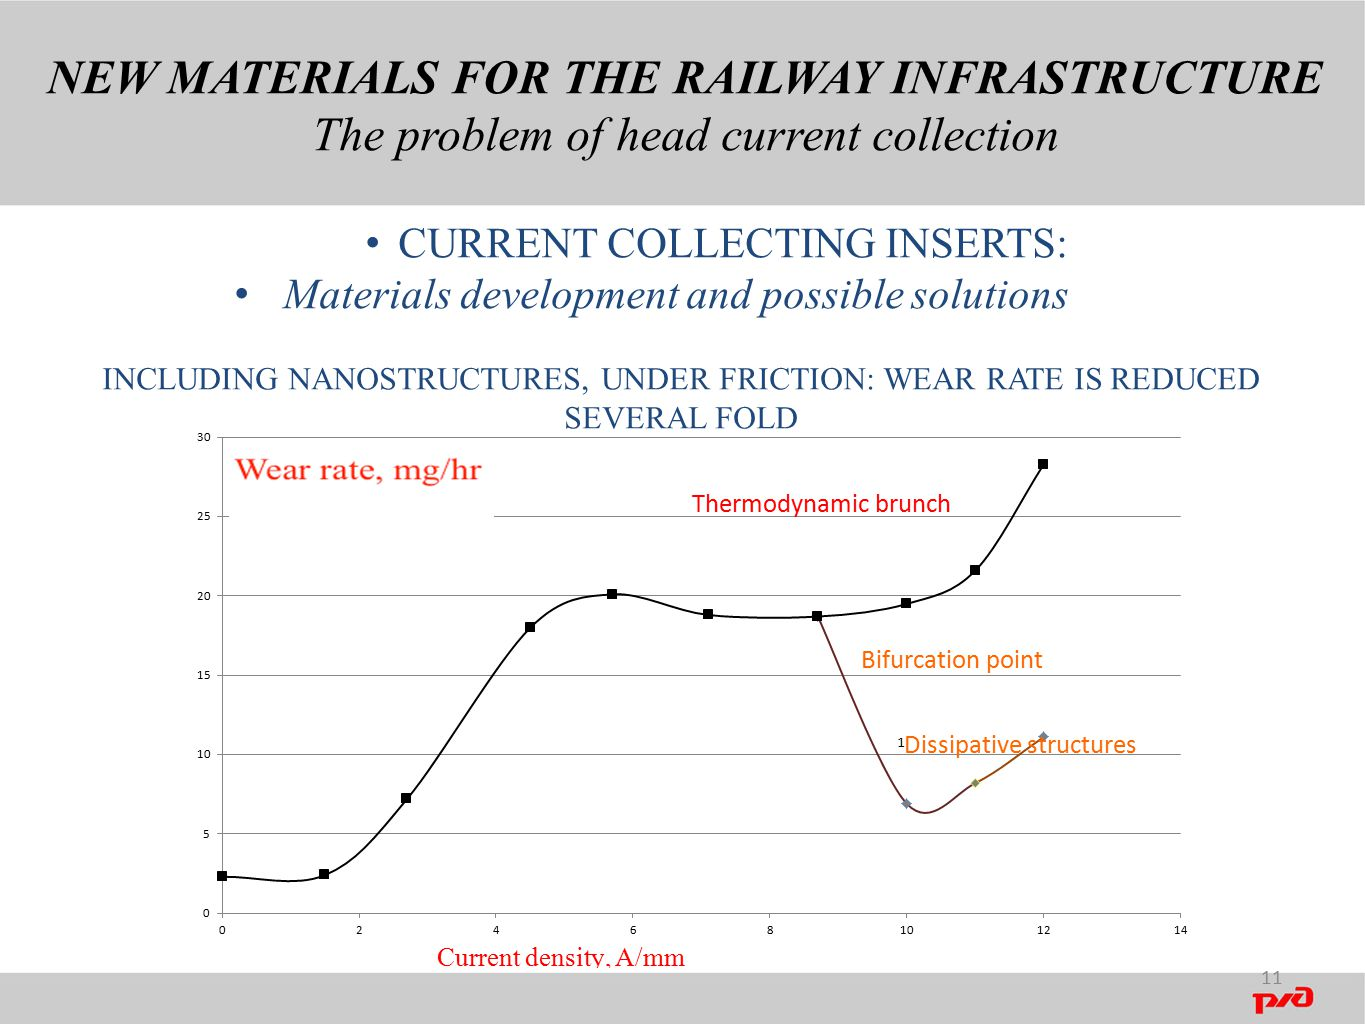 NEW MATERIALS FOR THE RAILWAY INFRASTRUCTURE The problem of head current collection 11 CURRENT COLLECTING INSERTS: Materials development and possible solutions СНИЖЕНИUSING SELF-ASSEMBLY BEHAVIOUR OF SURFACE STRUCTURES, INCLUDING NANOSTRUCTURES, UNDER FRICTION: WEAR RATE IS REDUCED SEVERAL FOLD